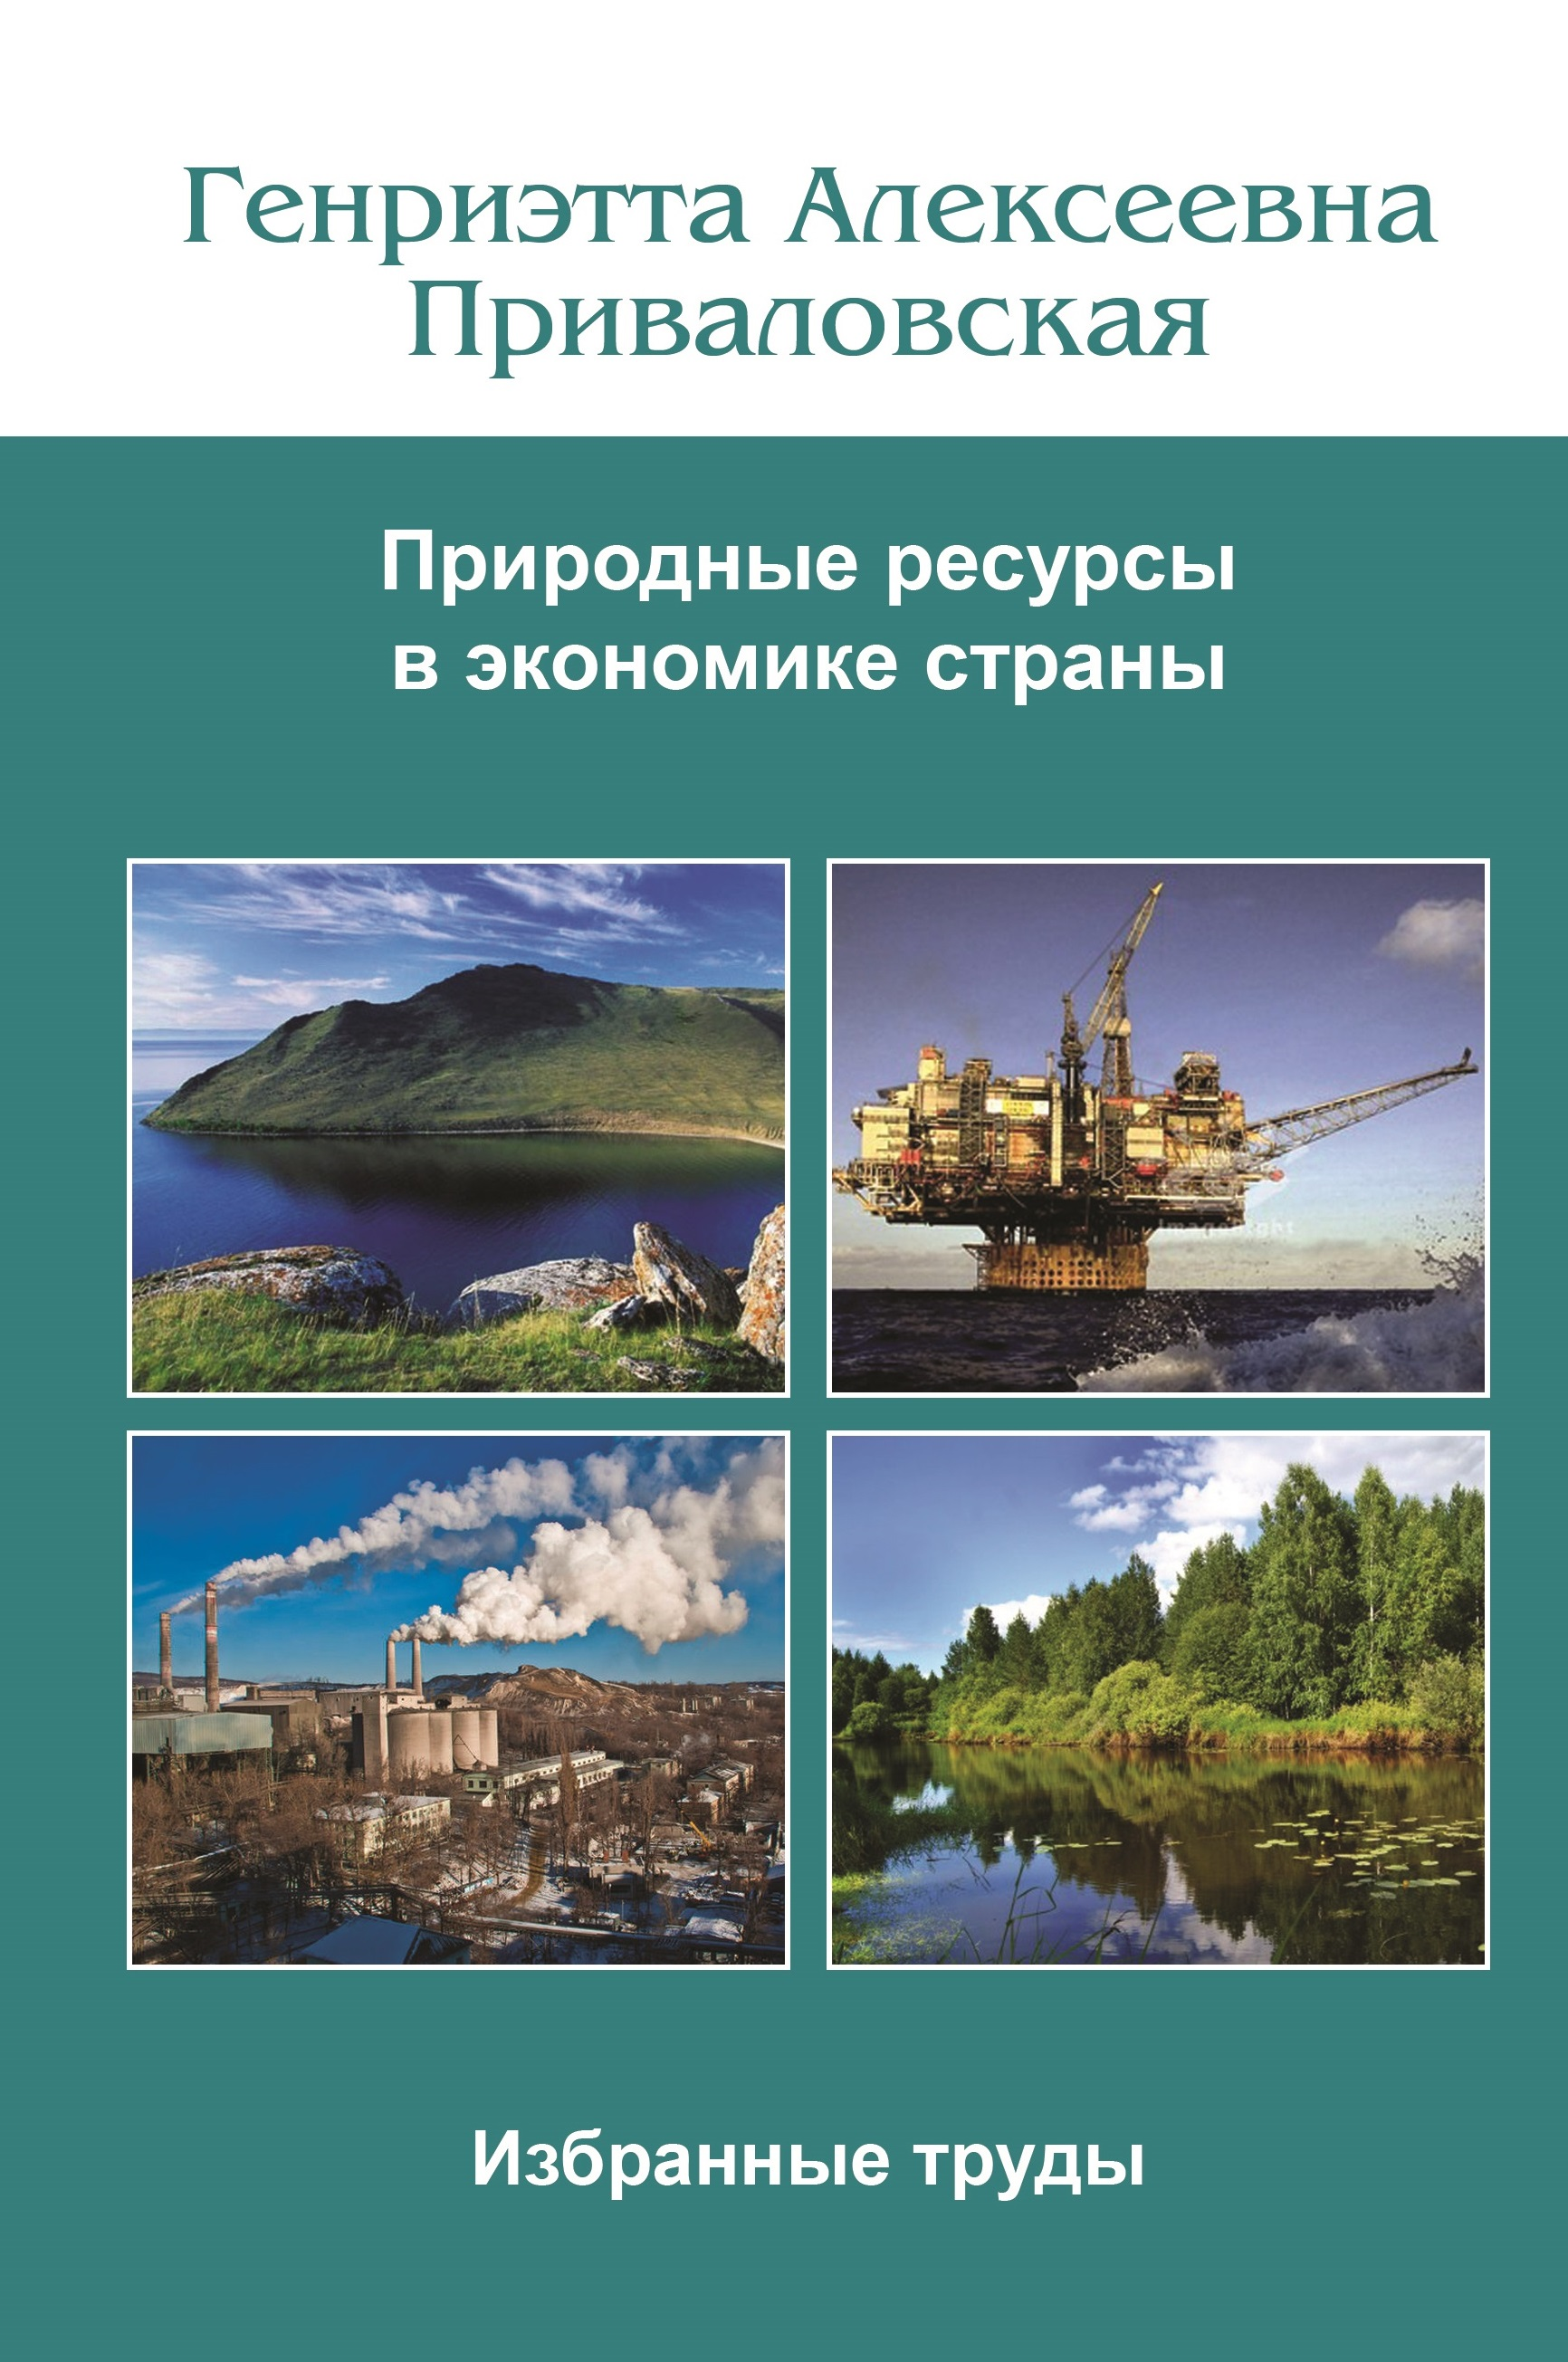 Henrietta Privalovskaya. Natural Resources in National Economy: Collection of Works / ed. Georgy Fomenko, Tatiana Runova; preparation of materials I.N. Volkova, V.N. Avanesov, A.N. Privalovsky, A.K. Luzanova